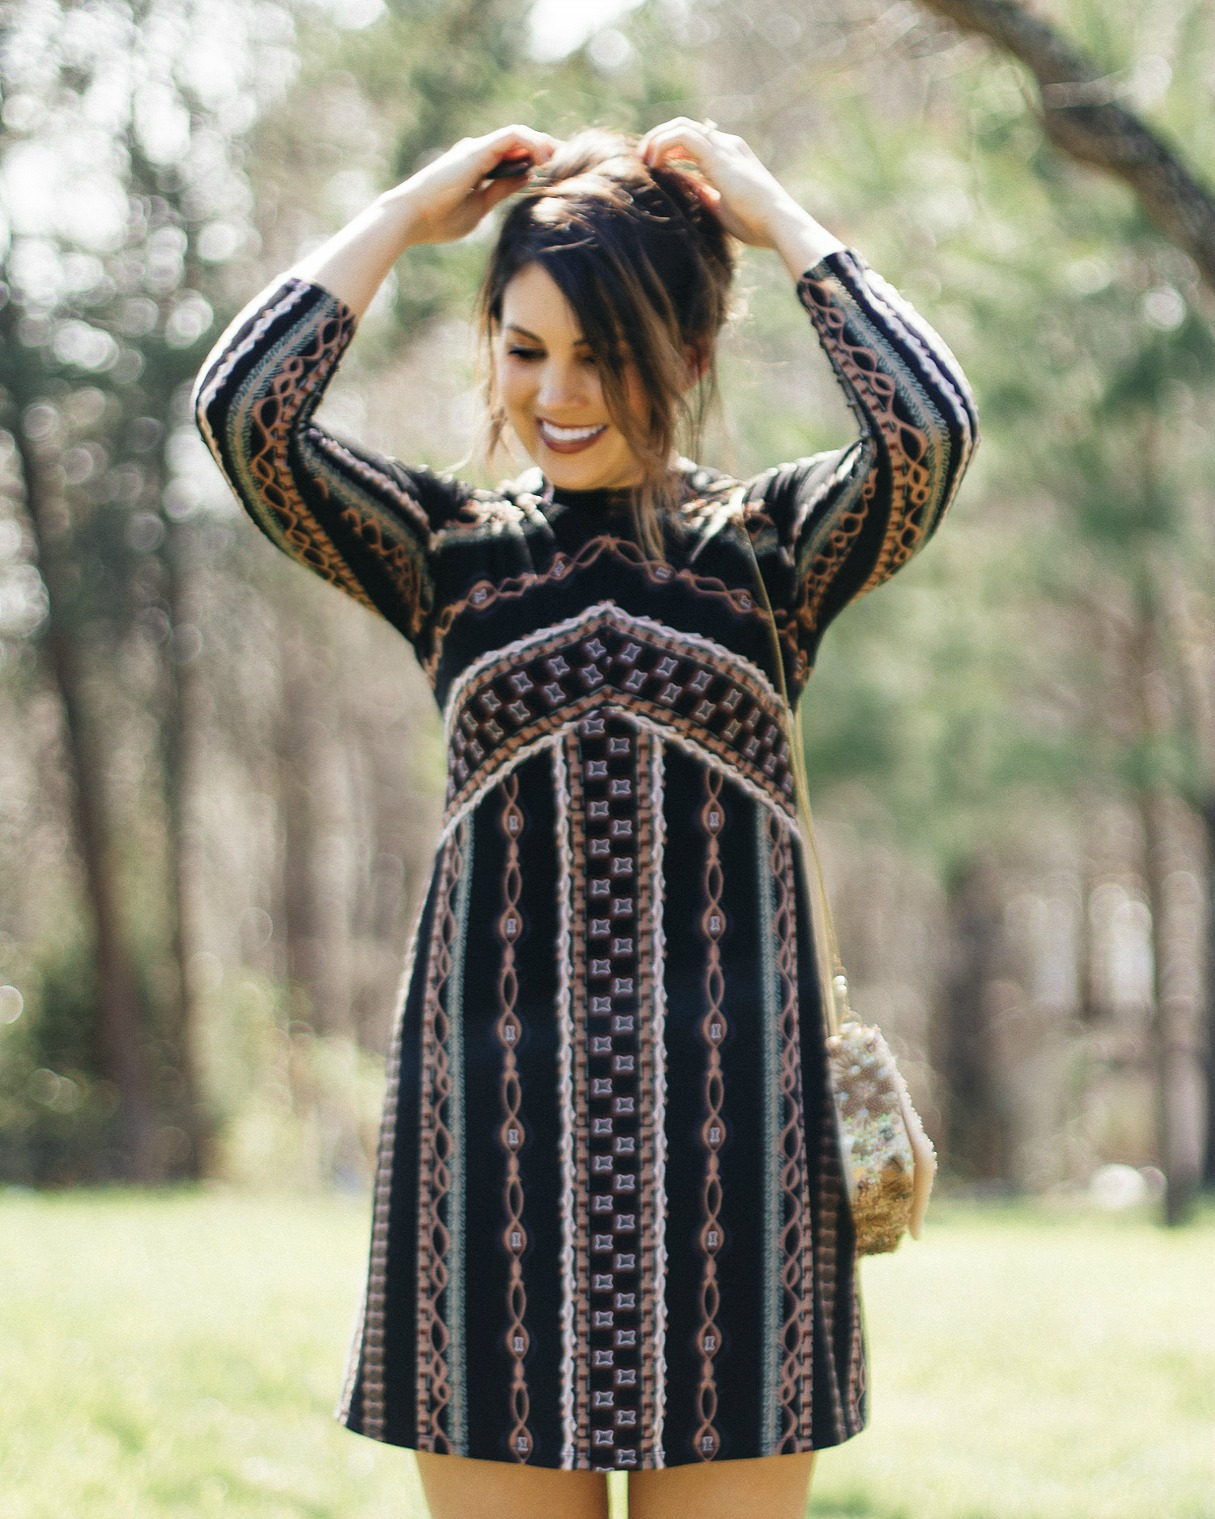 free people dress, free people outfit, boho fashion, embellished bag, xo samantha brooke, nc blogger, nc photographer, samantha brooke, sam brooke photo, samantha brooke photography